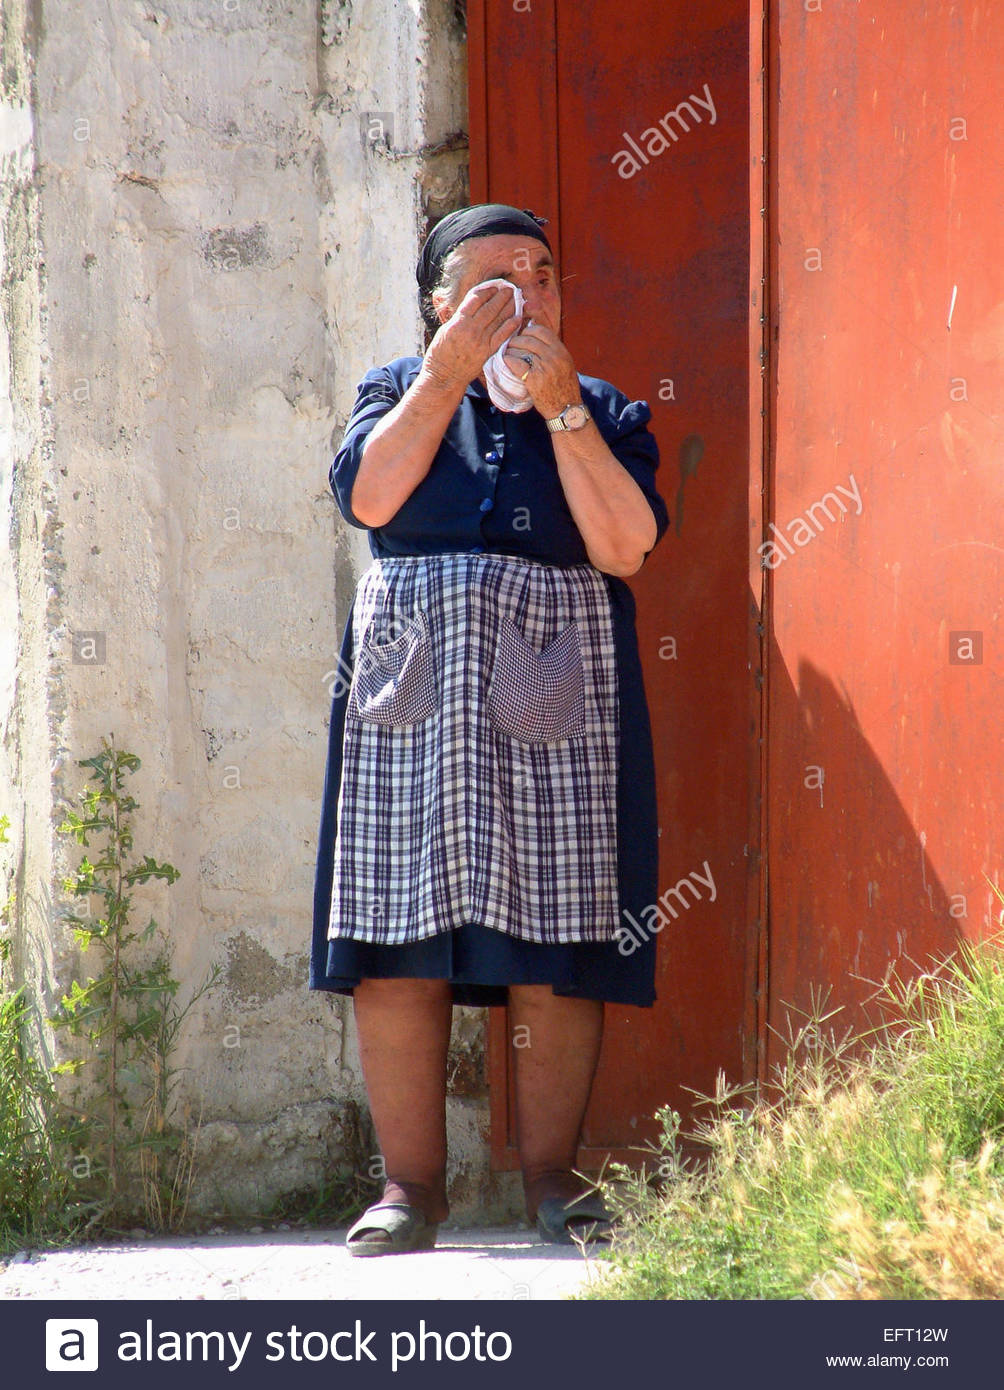 Elderly Woman Standing Outside Home Door Entrance Albania - Republic Of Albania Europe 2004 People Person Full Length - Stock Image